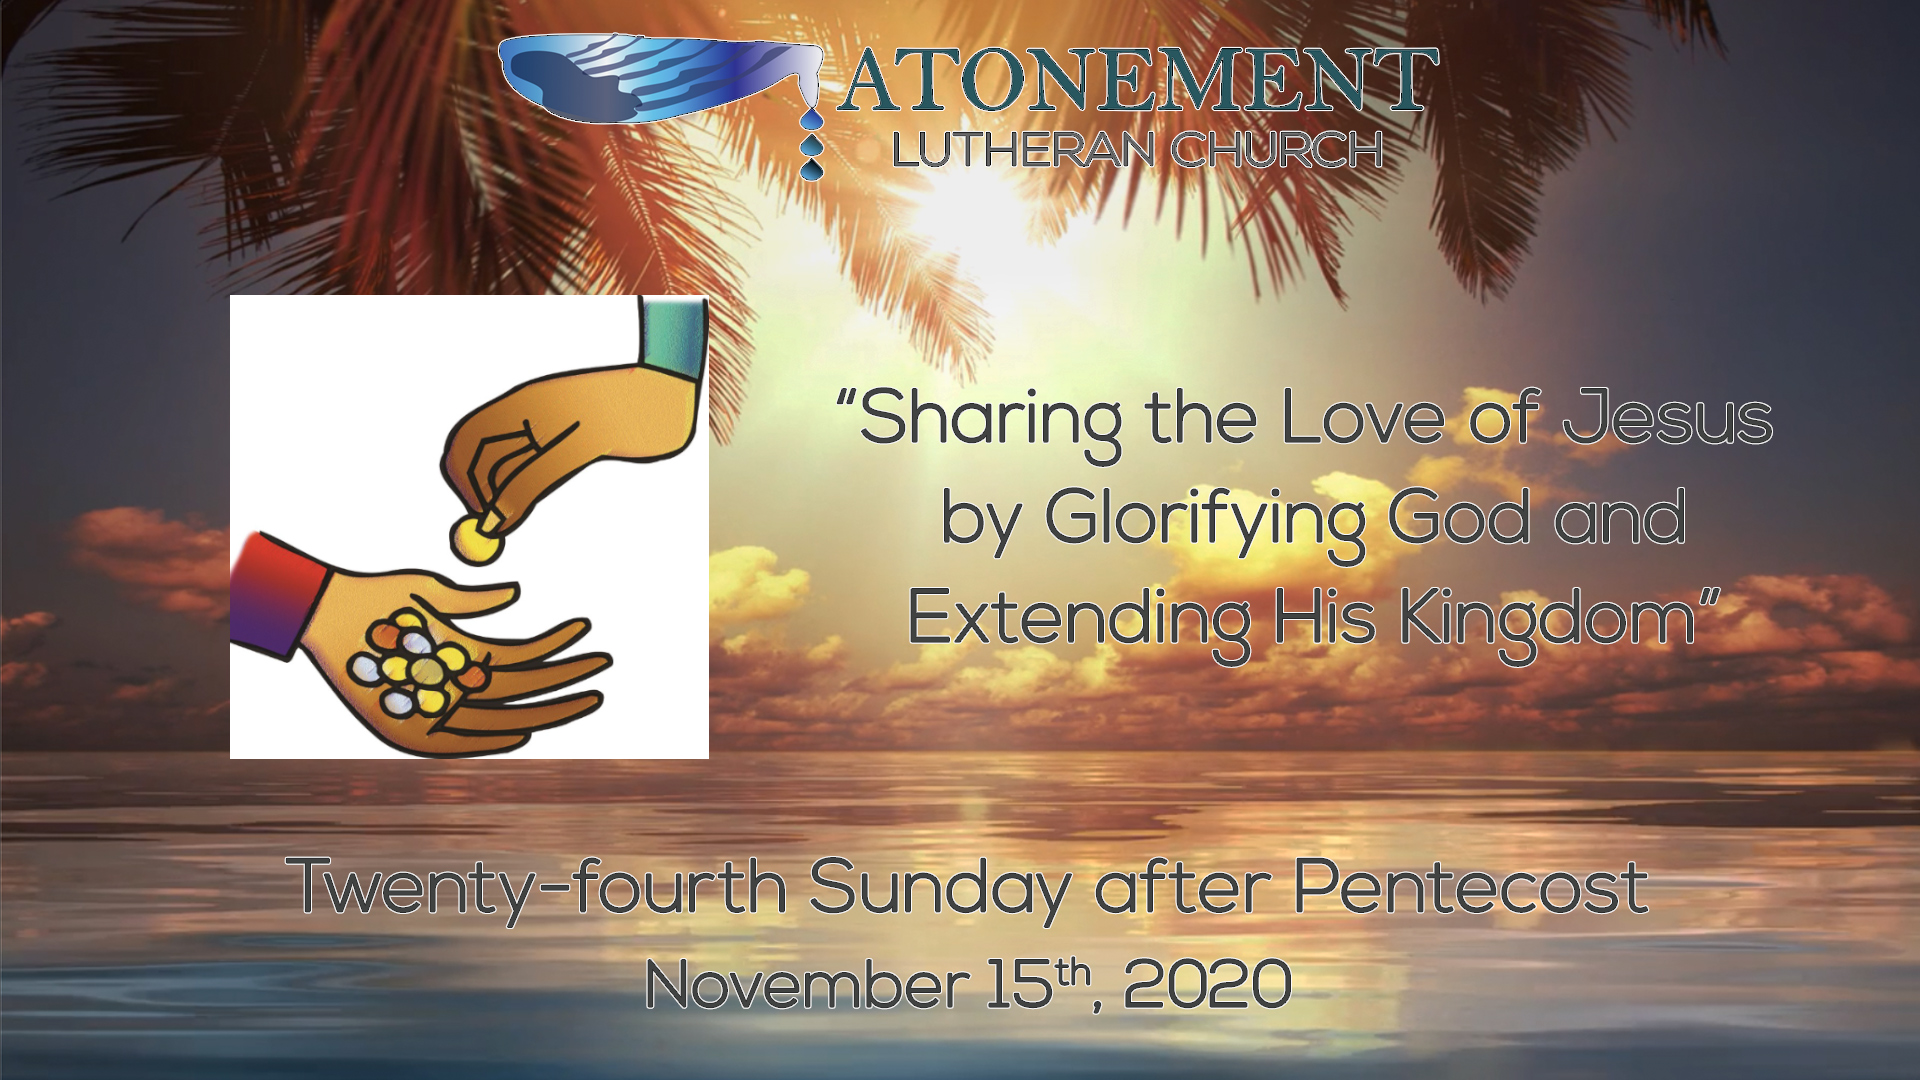 Nov 15 2020 24th Sunday after Pentecost